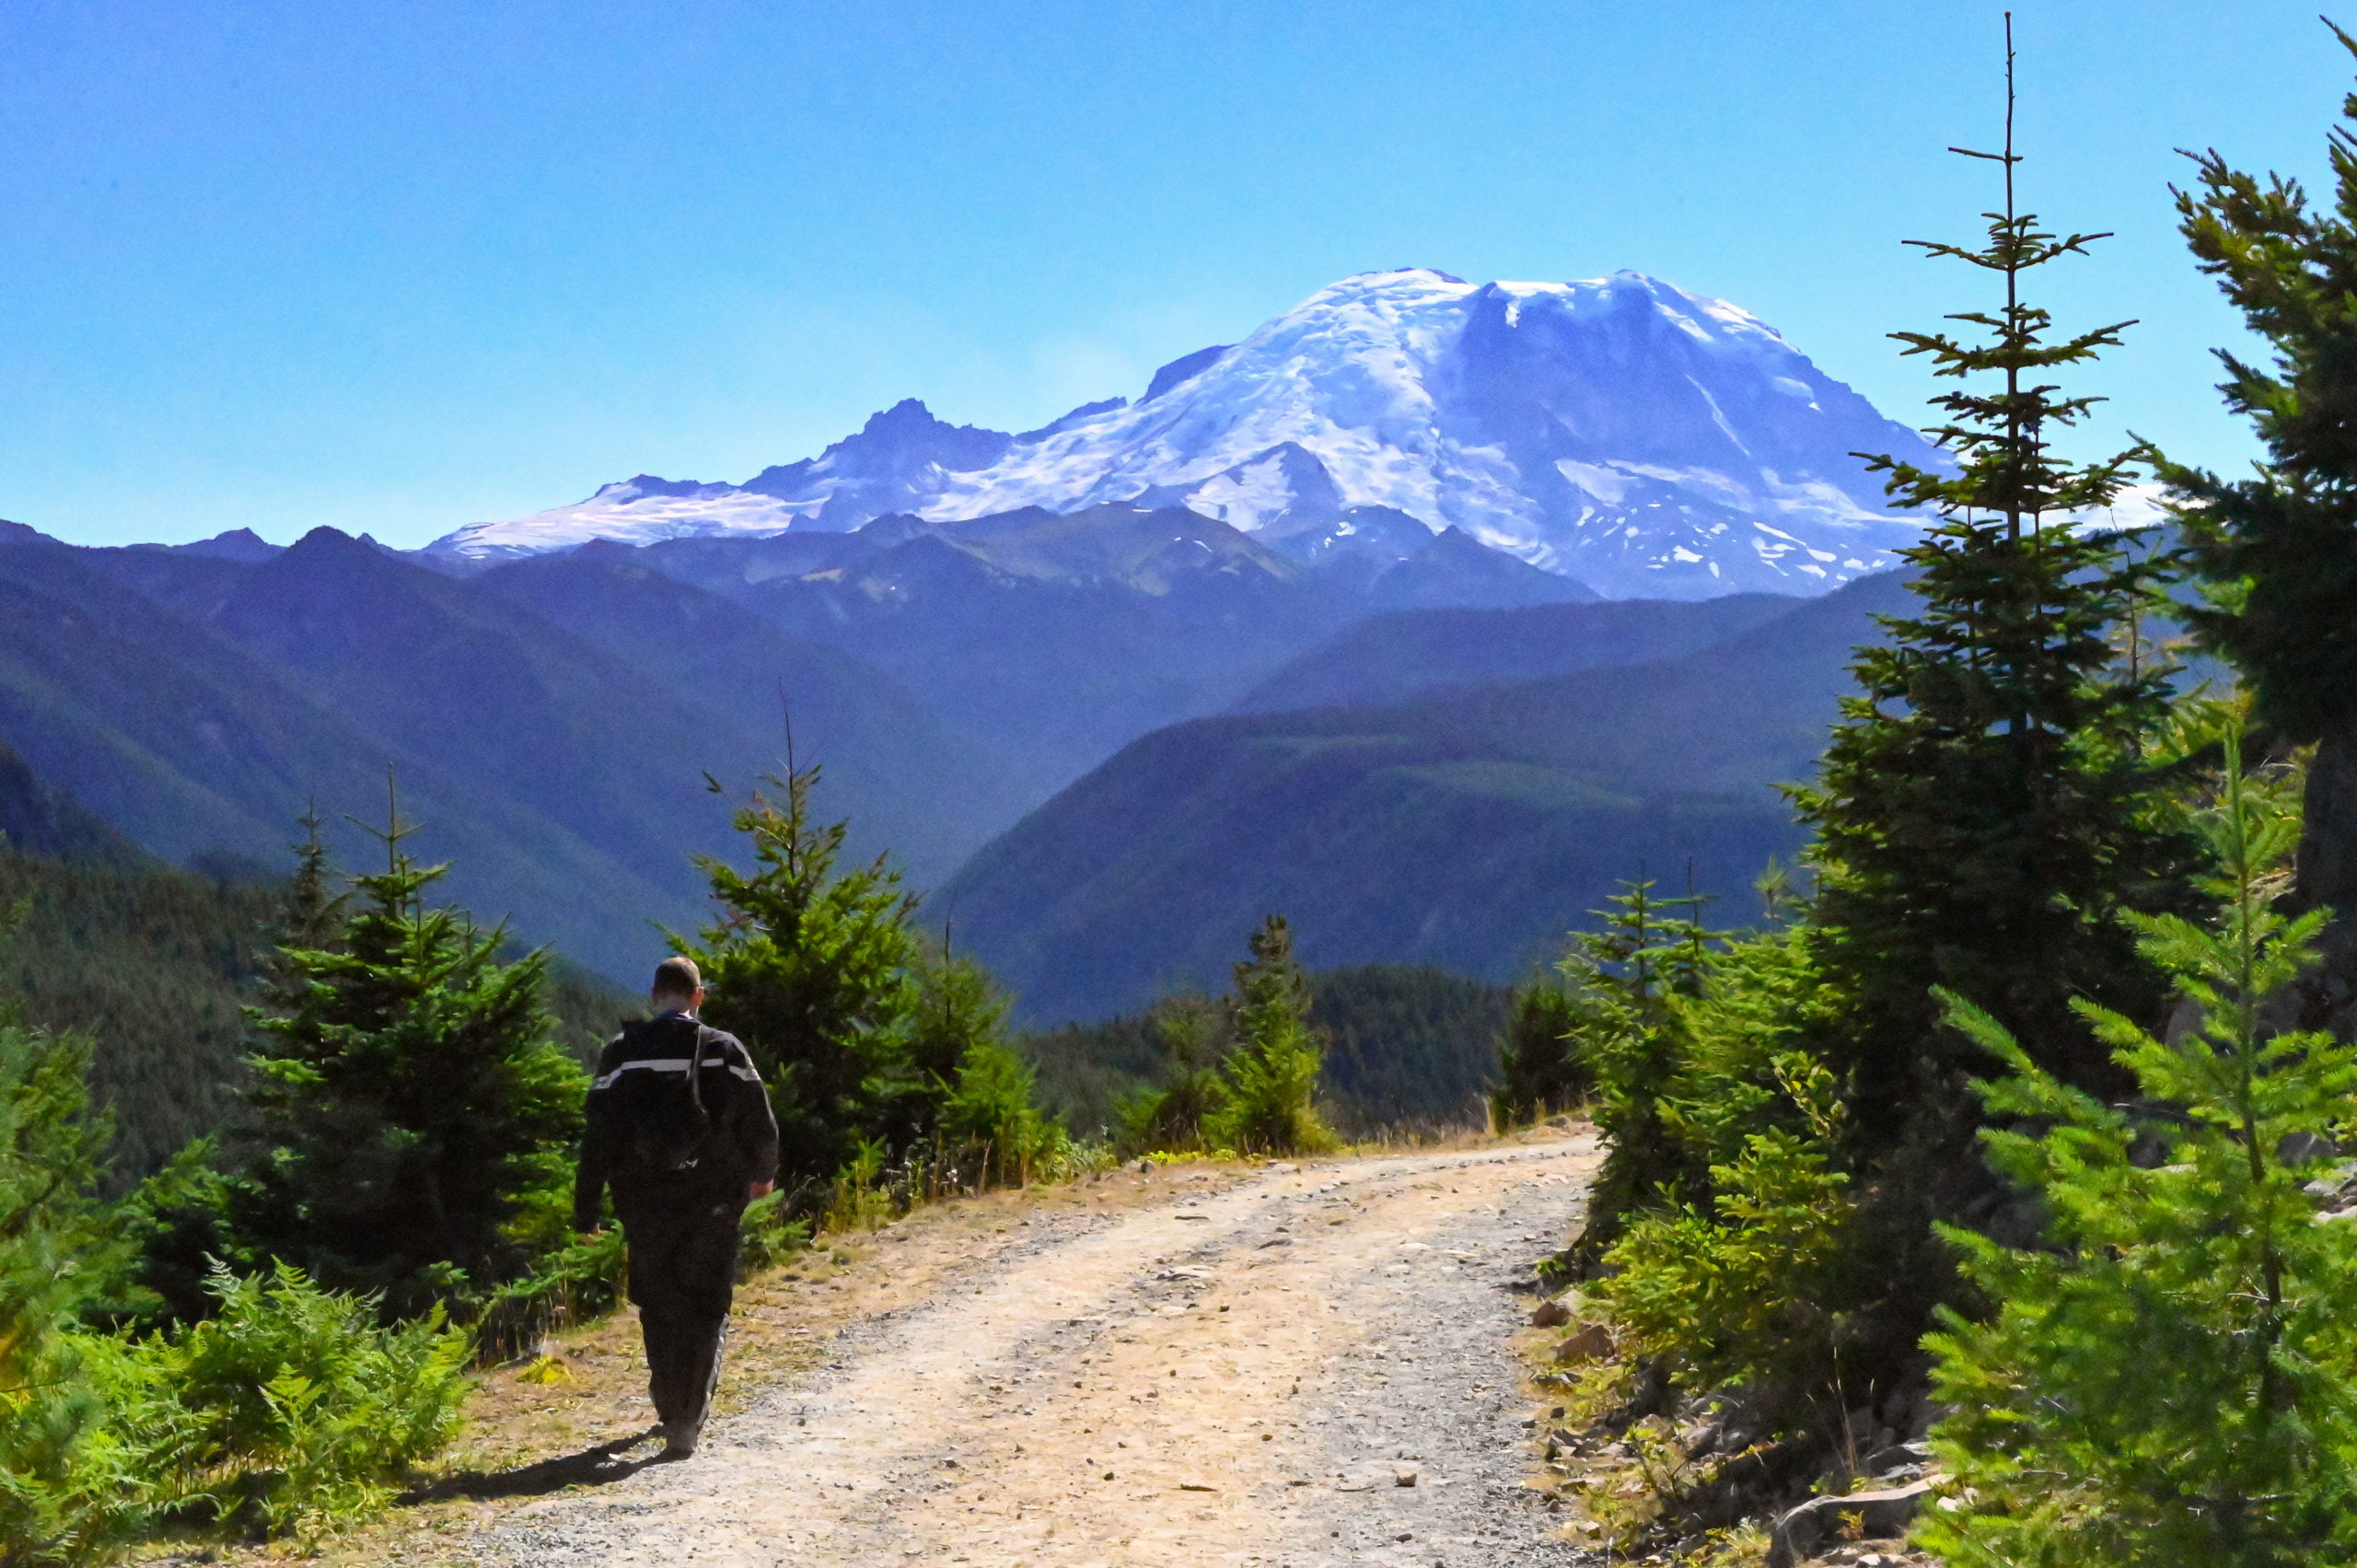 A hiker walking down a road toward Mt Rainier